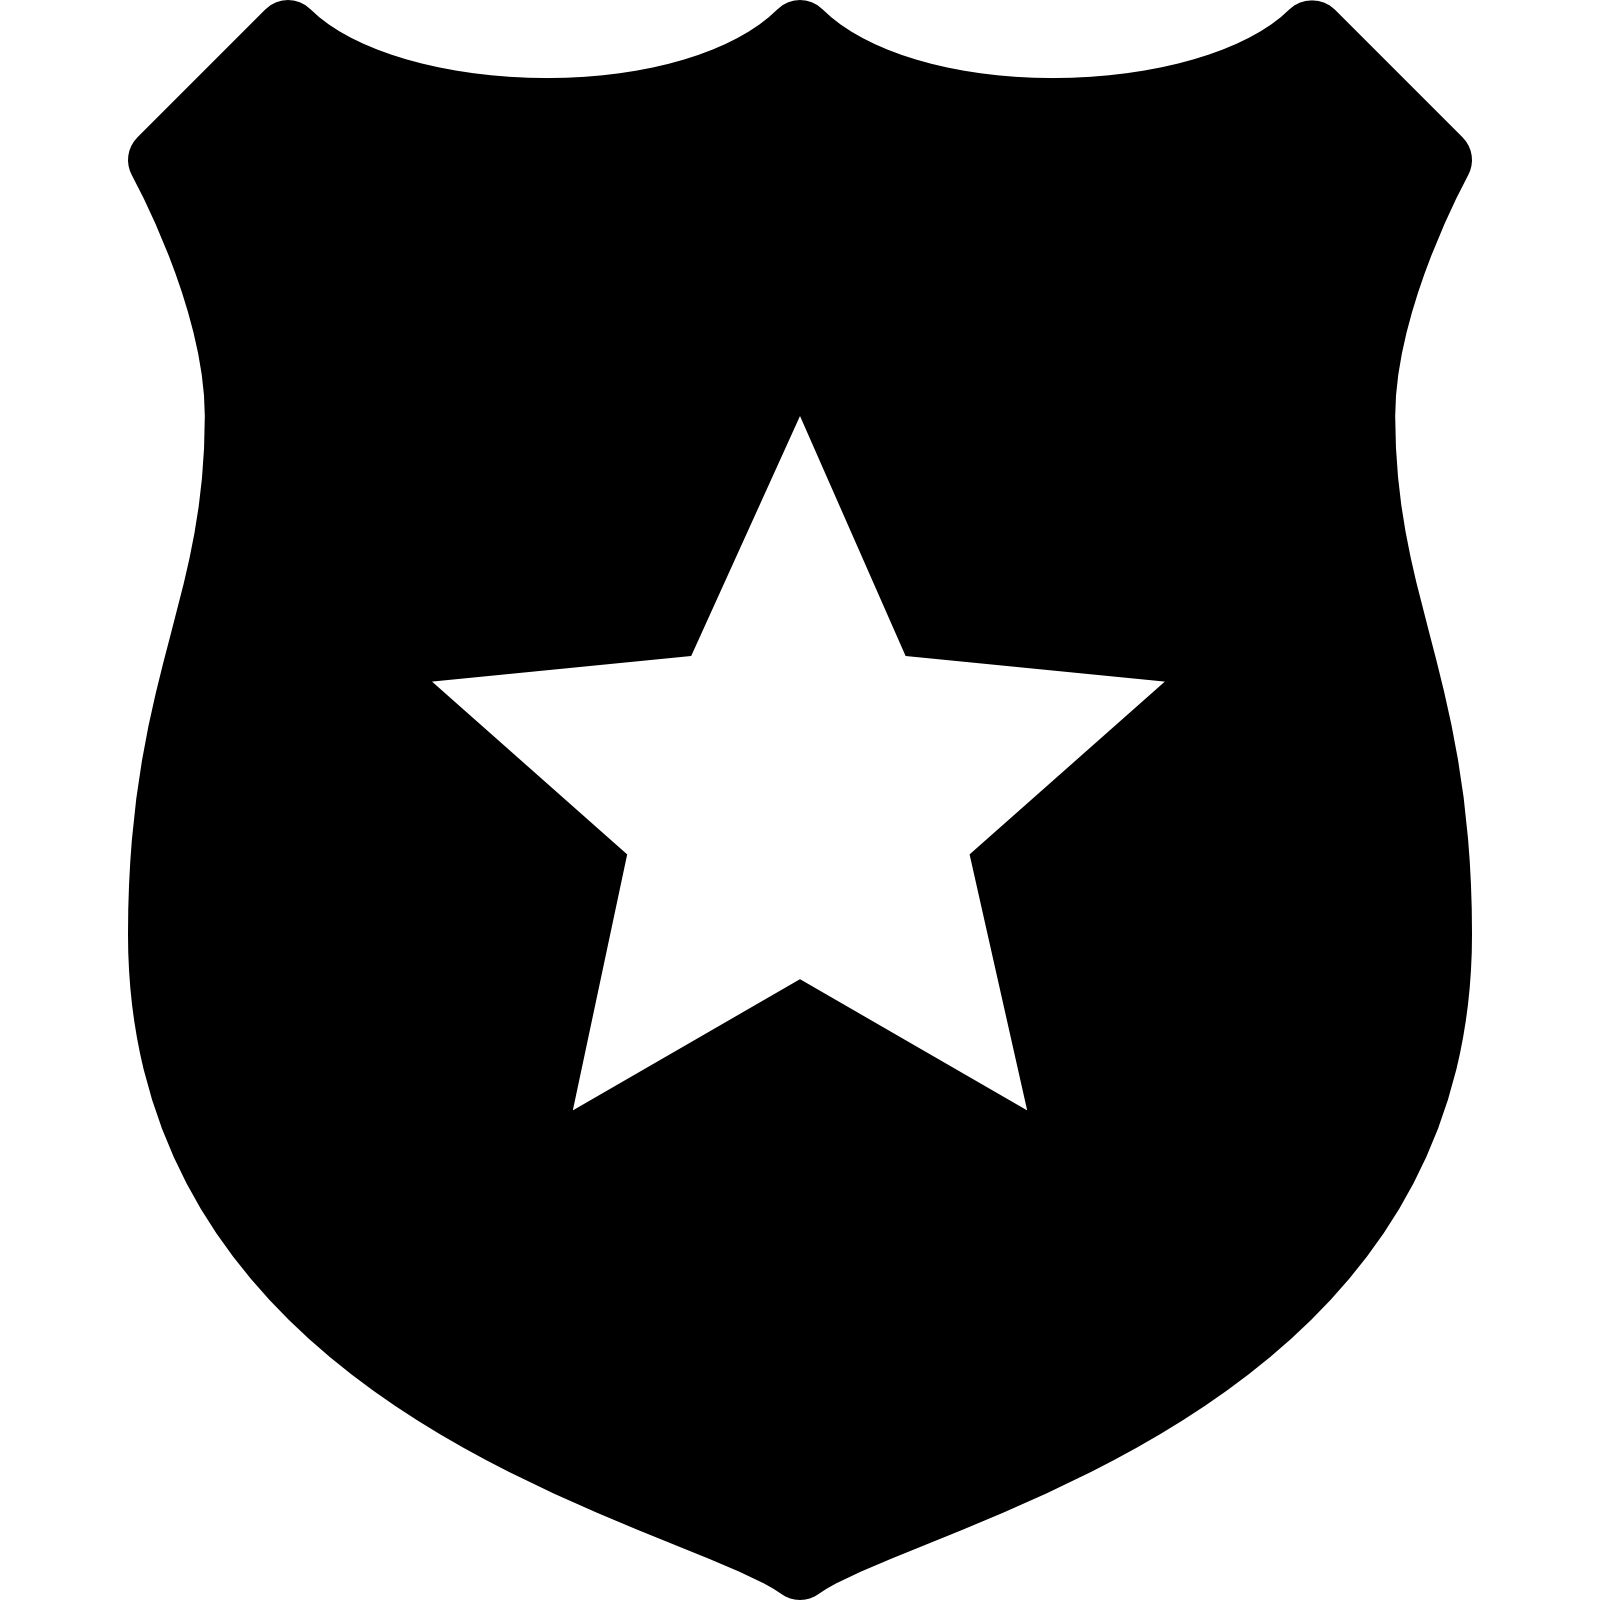 Police officer Computer Icons Badge.